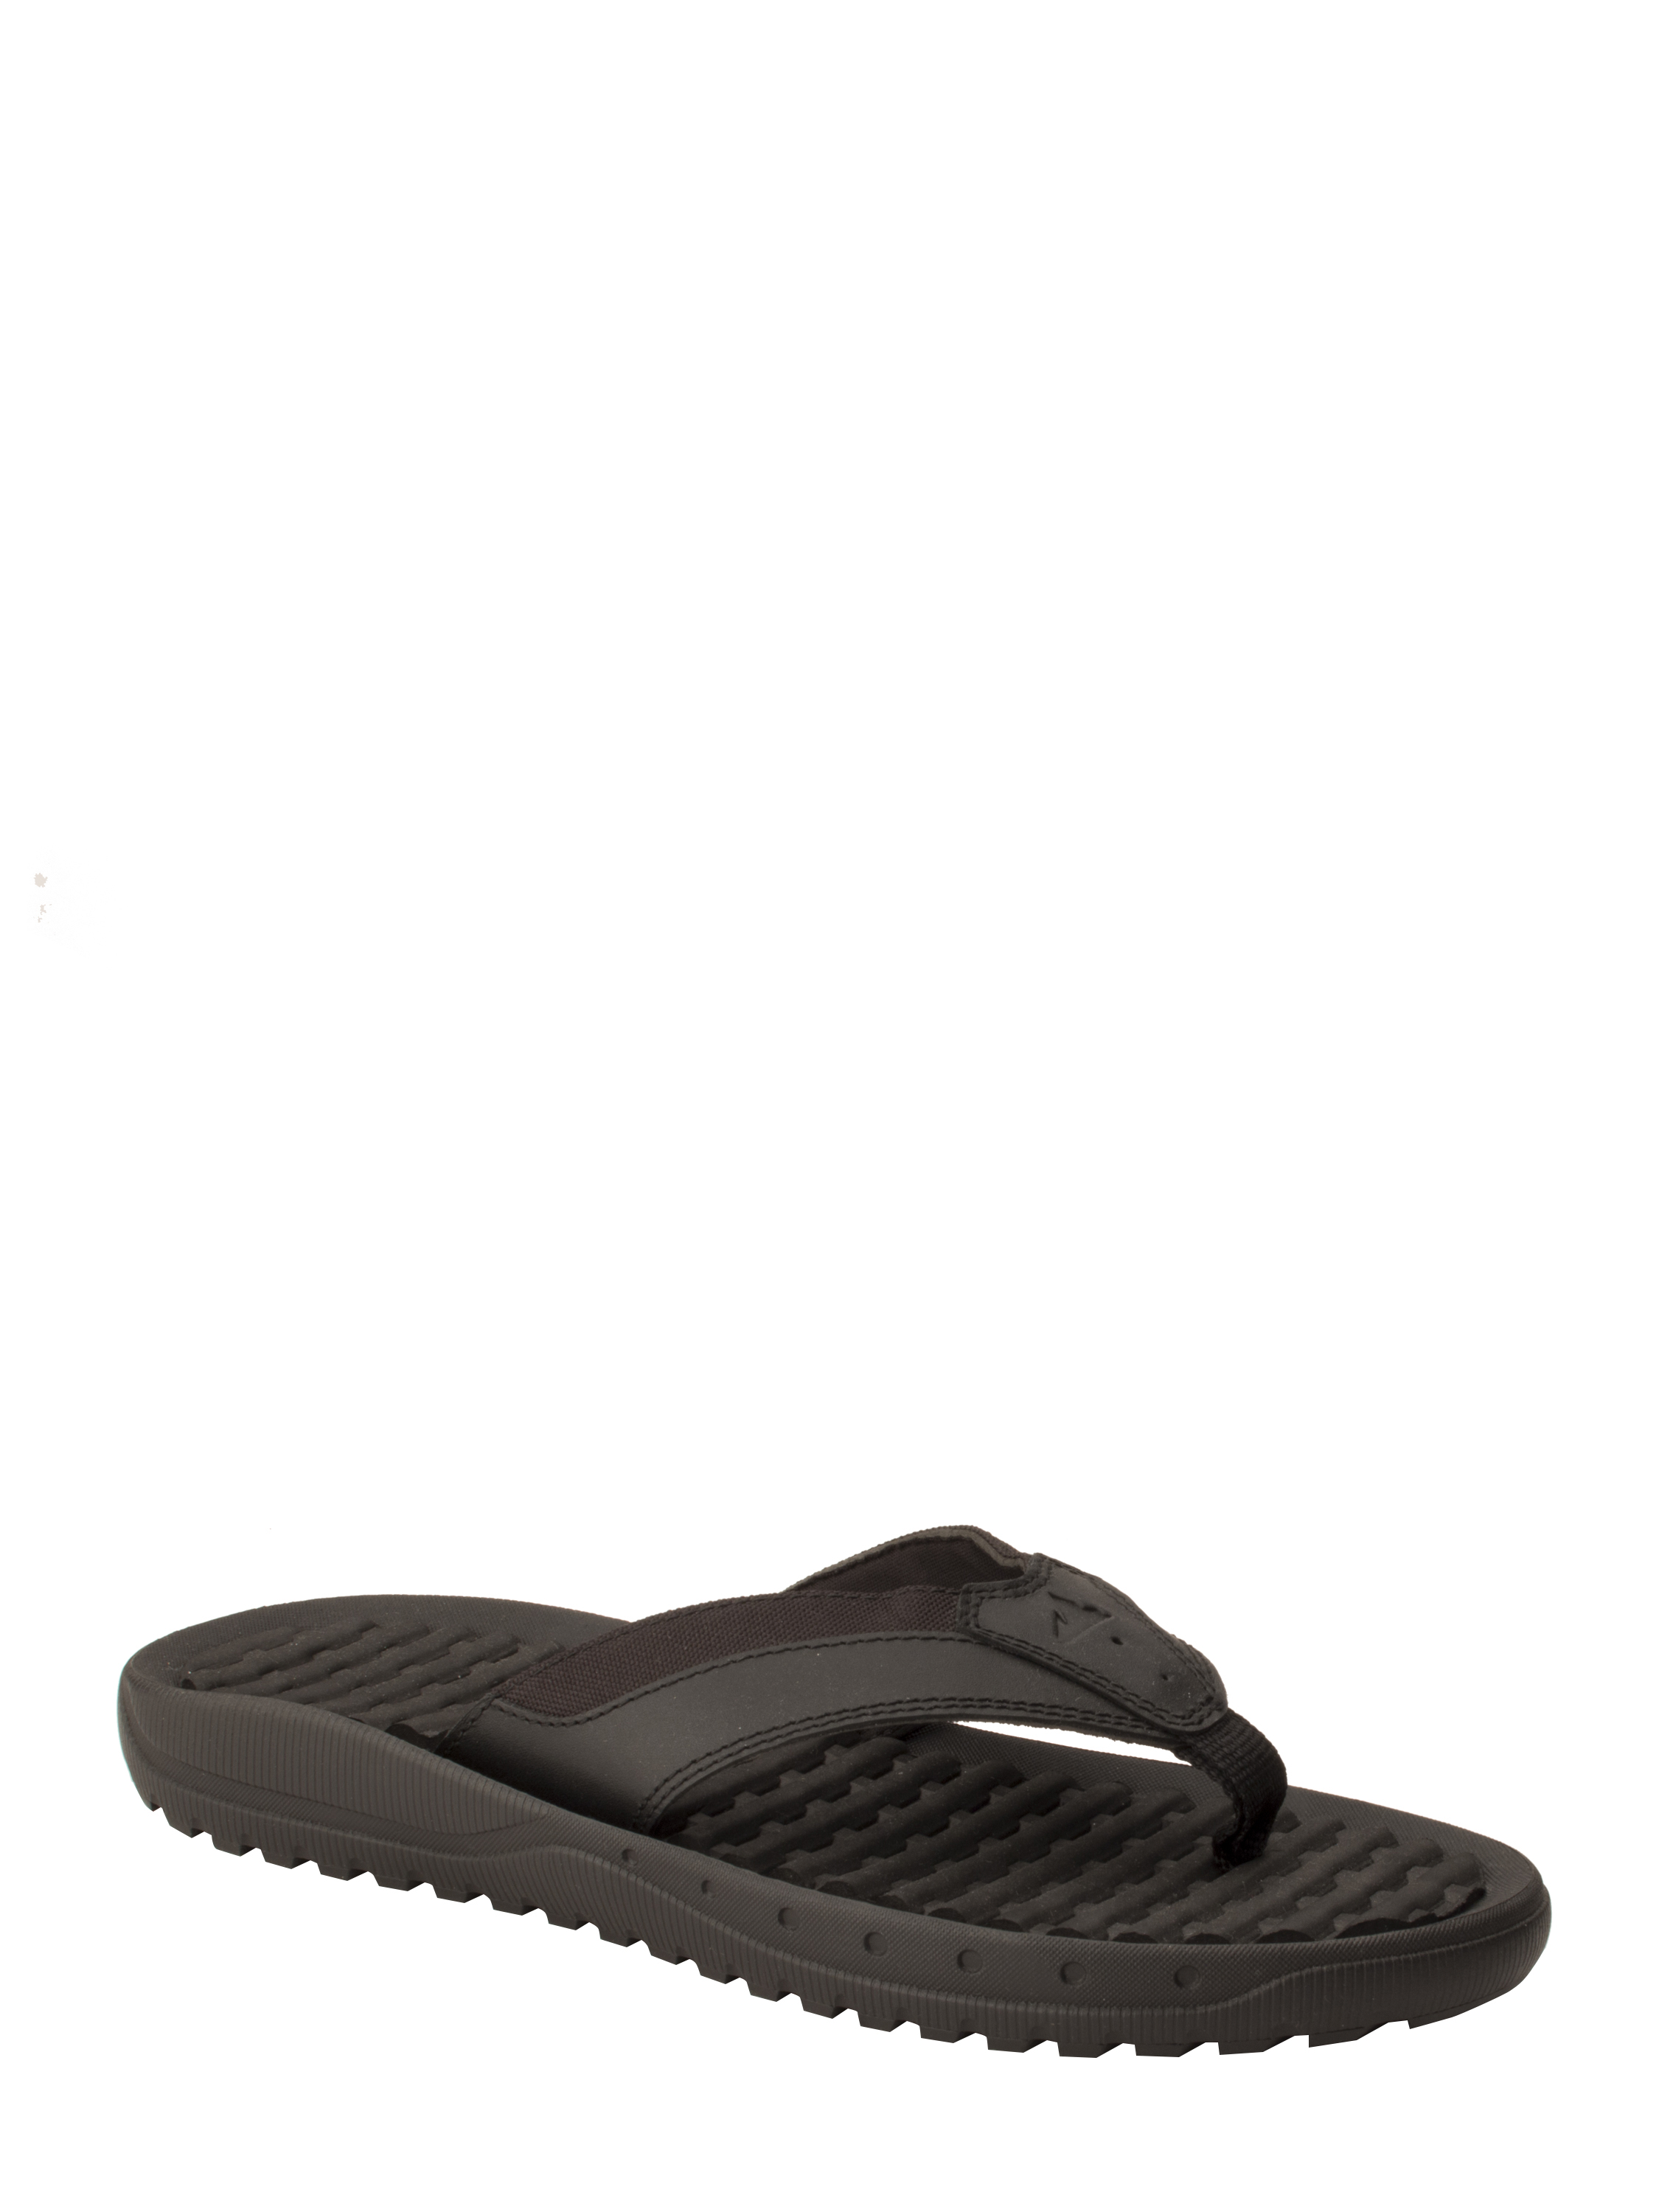 Everest Men's Sandal